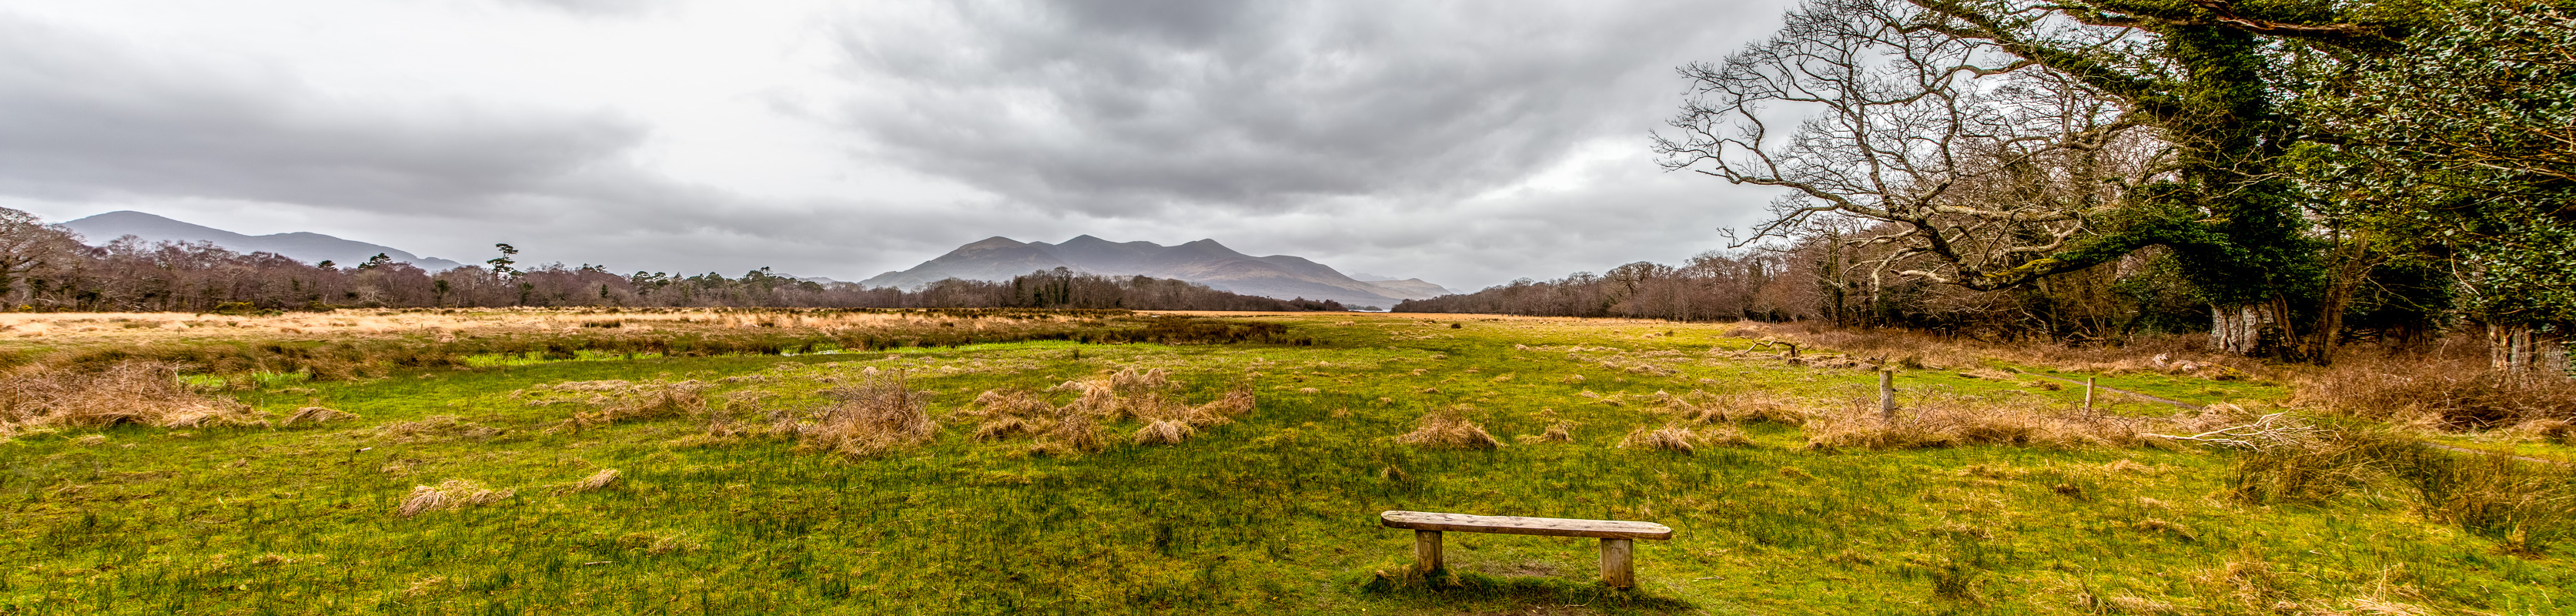 Panoramic view along our walk into Killarney through the National Park WCF-20.jpg